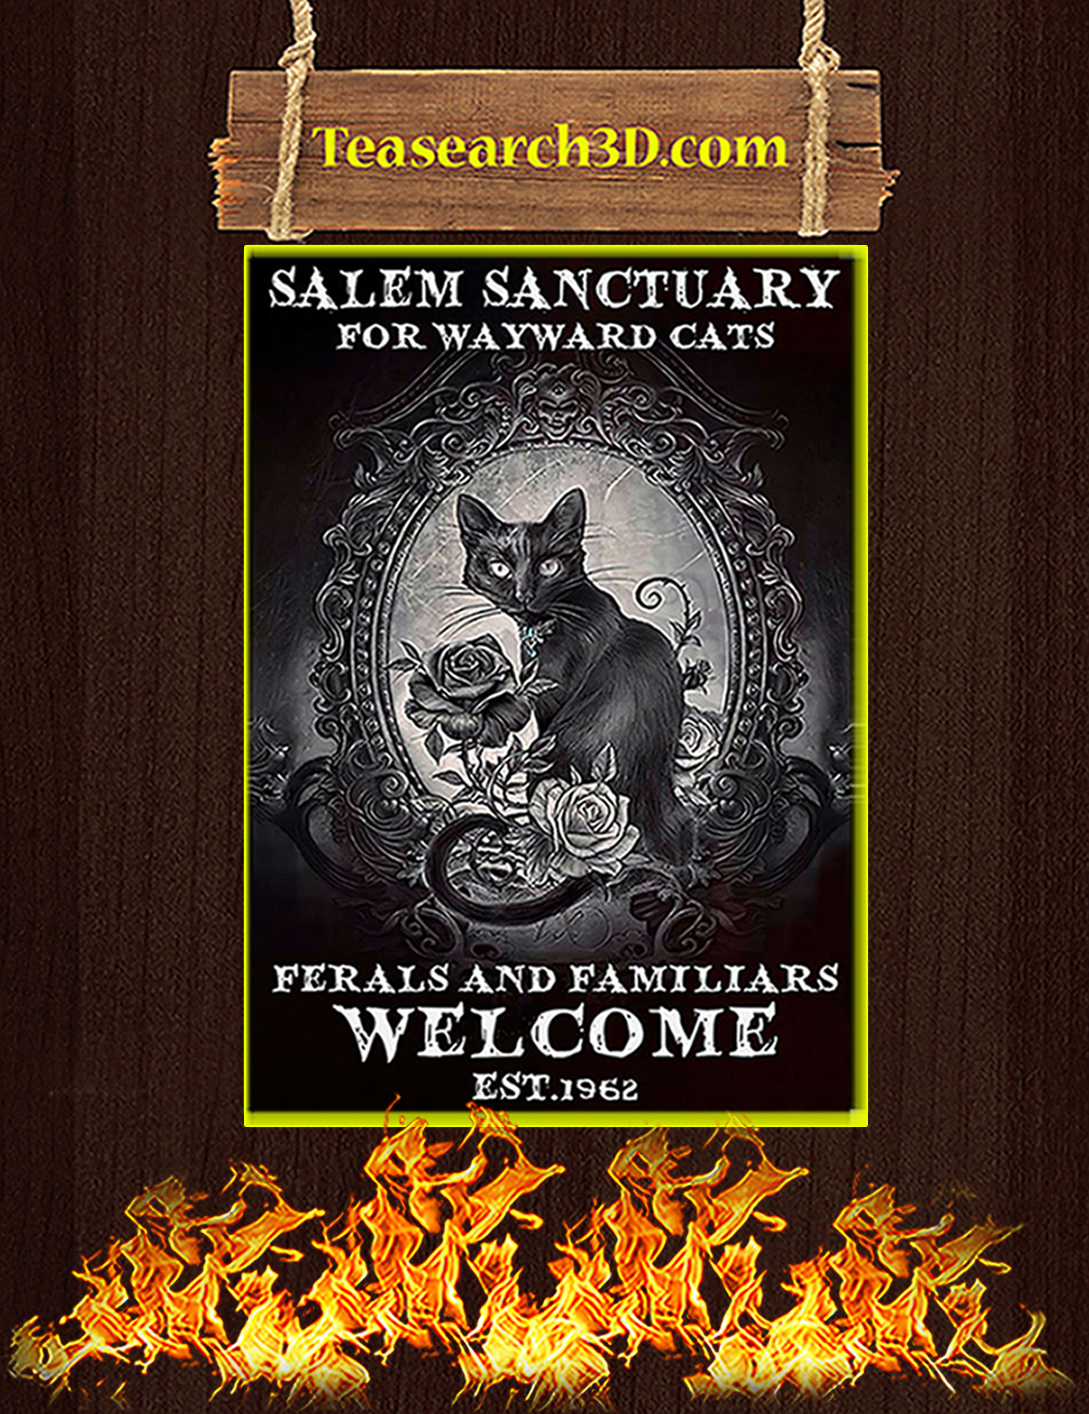 Gothic cat salem sanctuary for wayward cats poster A2